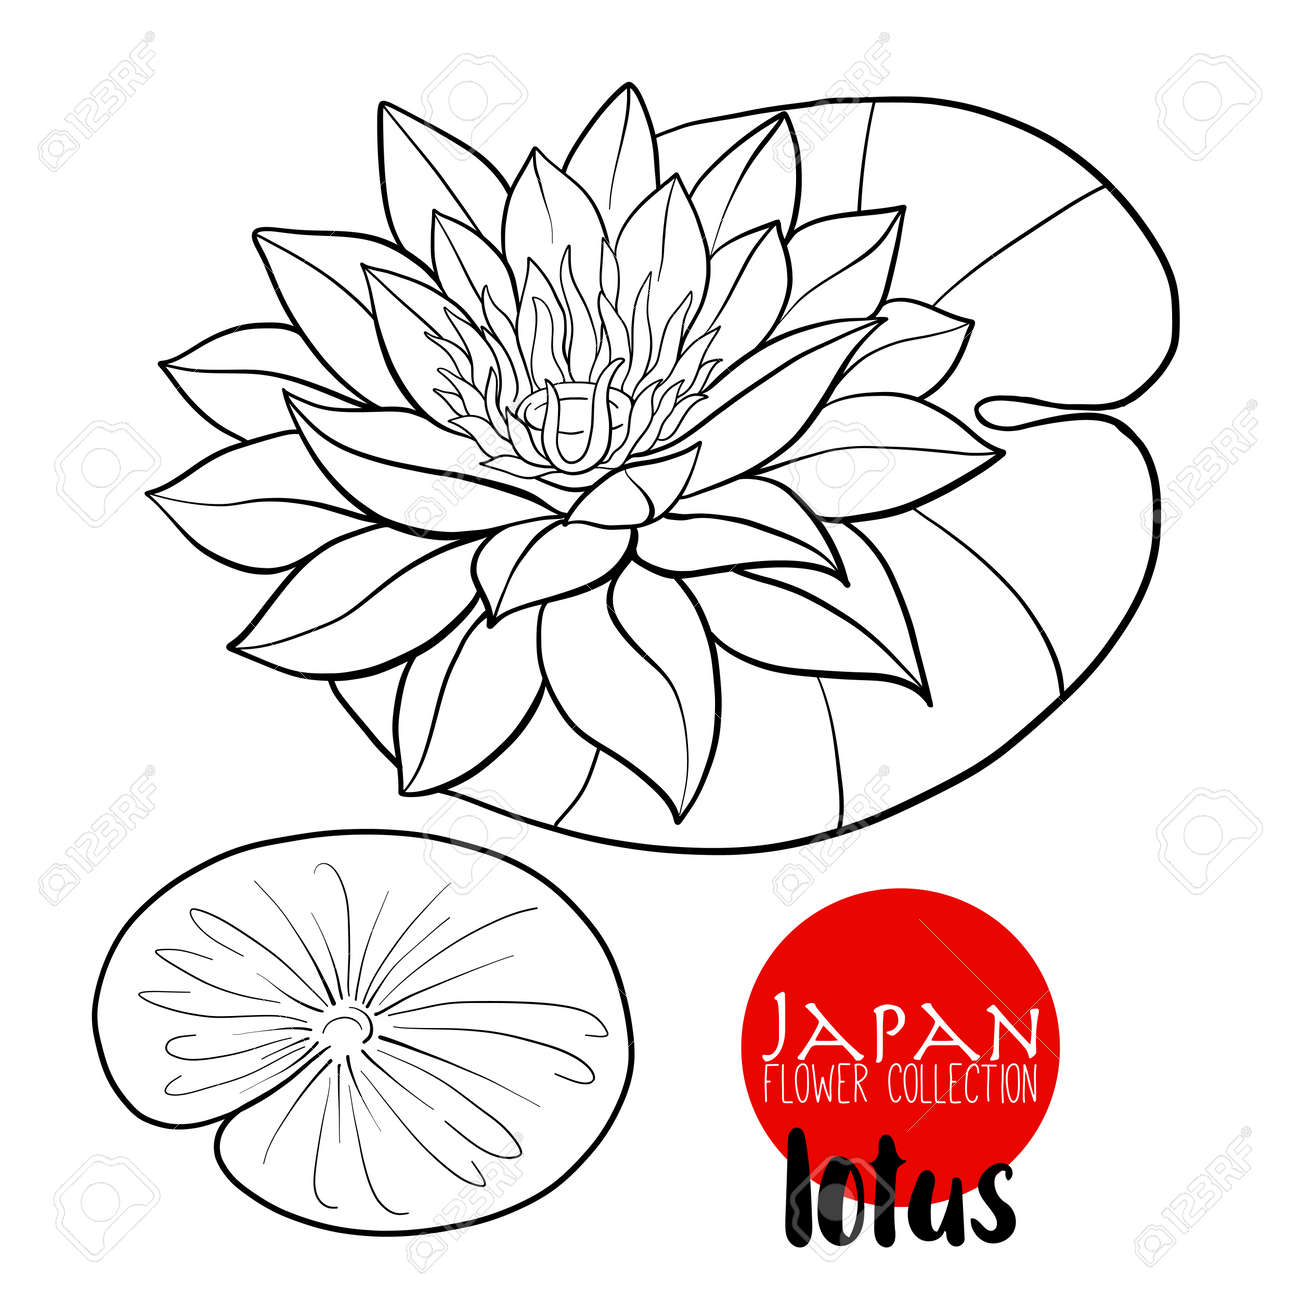 Lotus flowers stock line vector illustration botanic flowers outline drawing stock vector